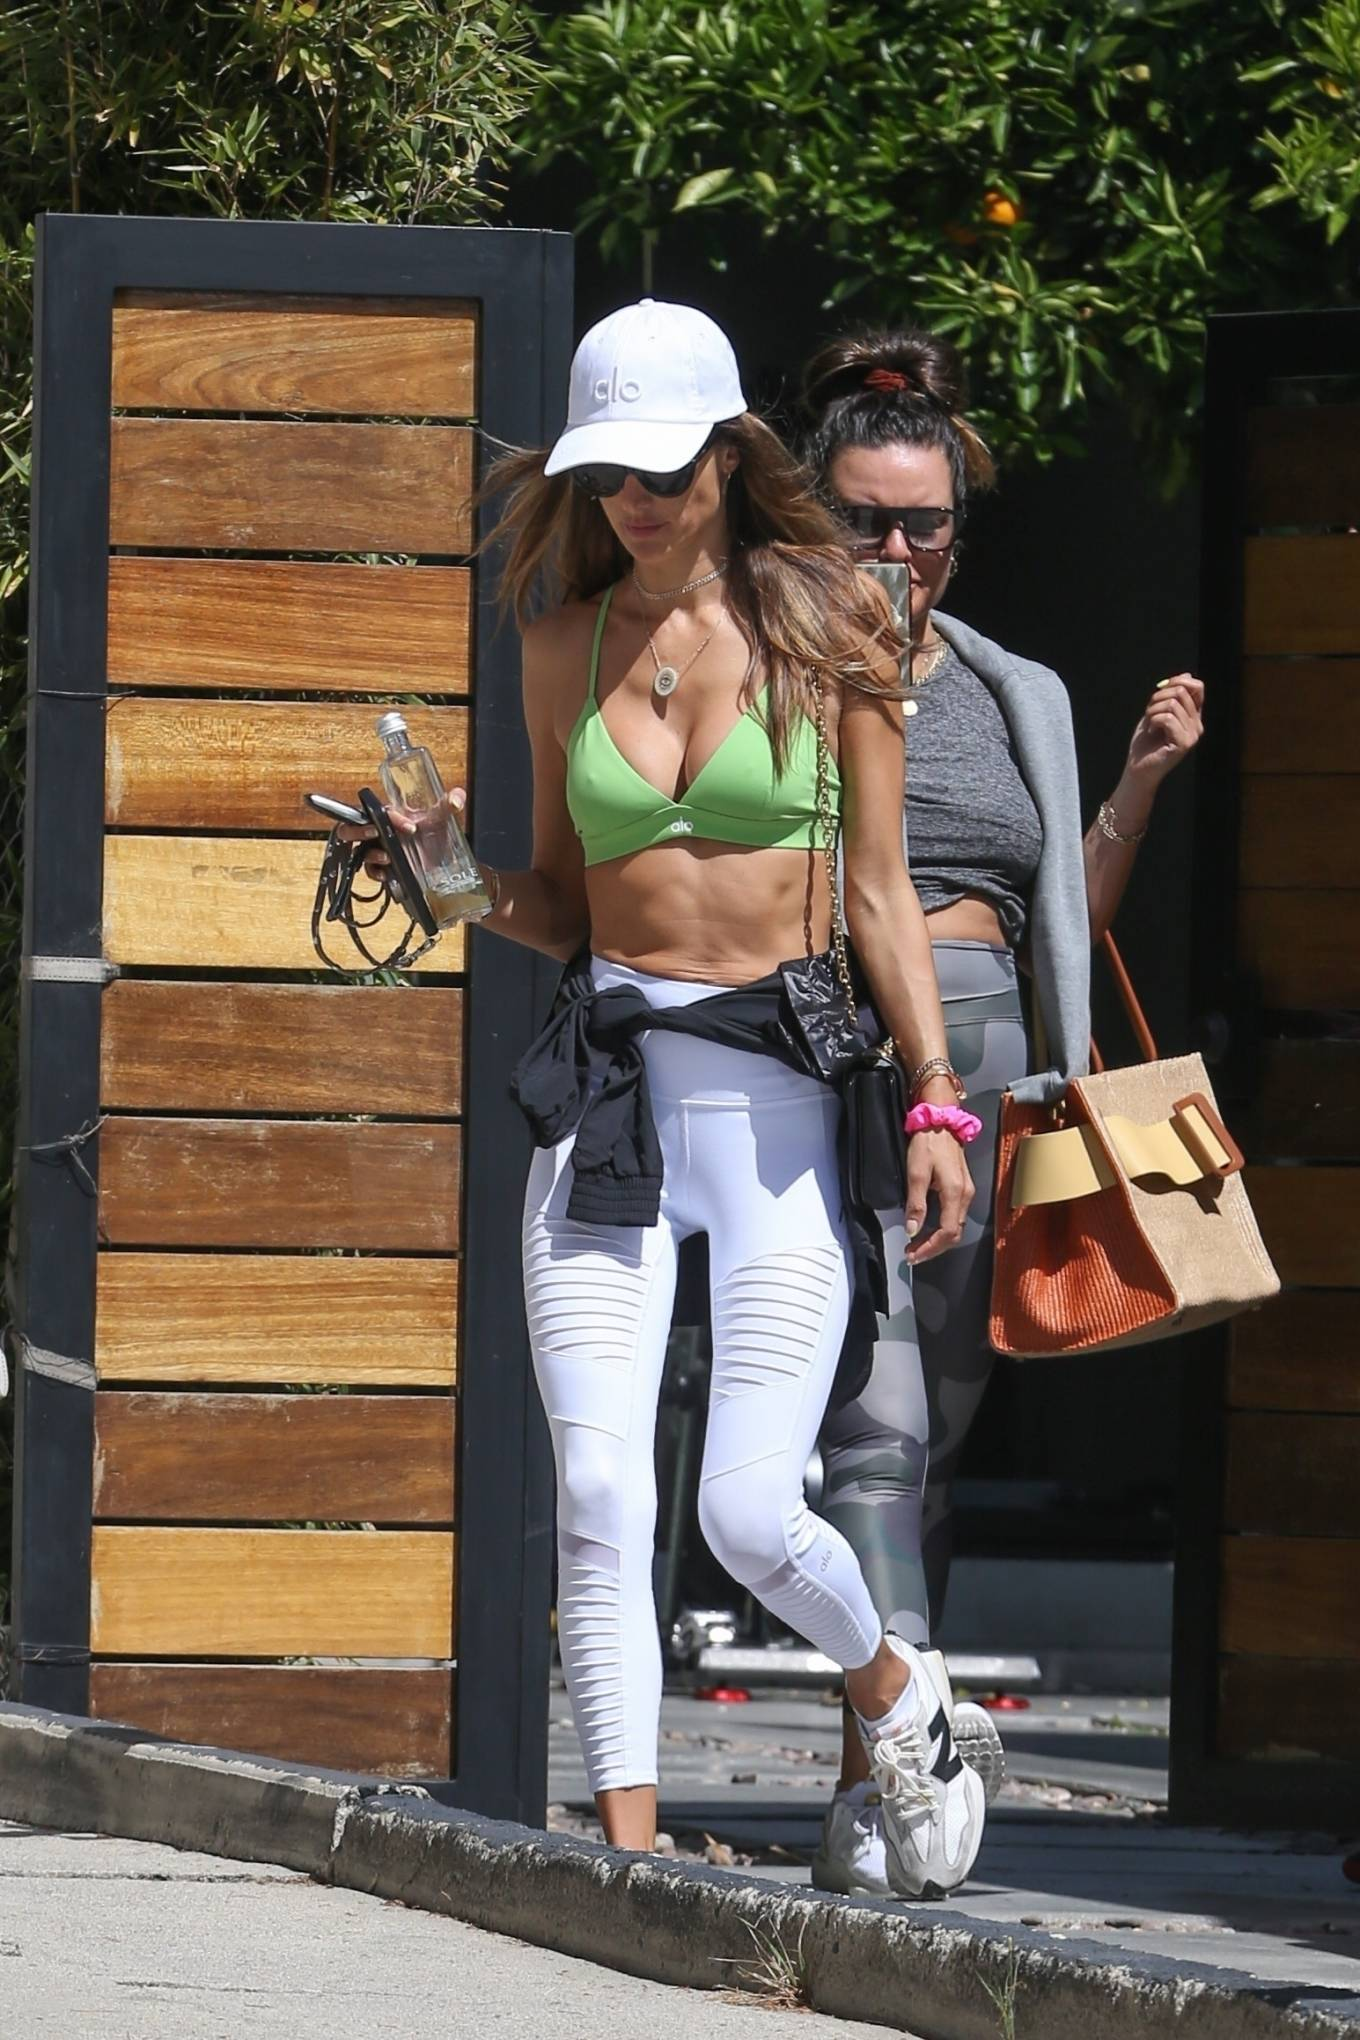 Alessandra Ambrosio donning a plunging green bralette with criss cross back, brand logo and spaghetti straps